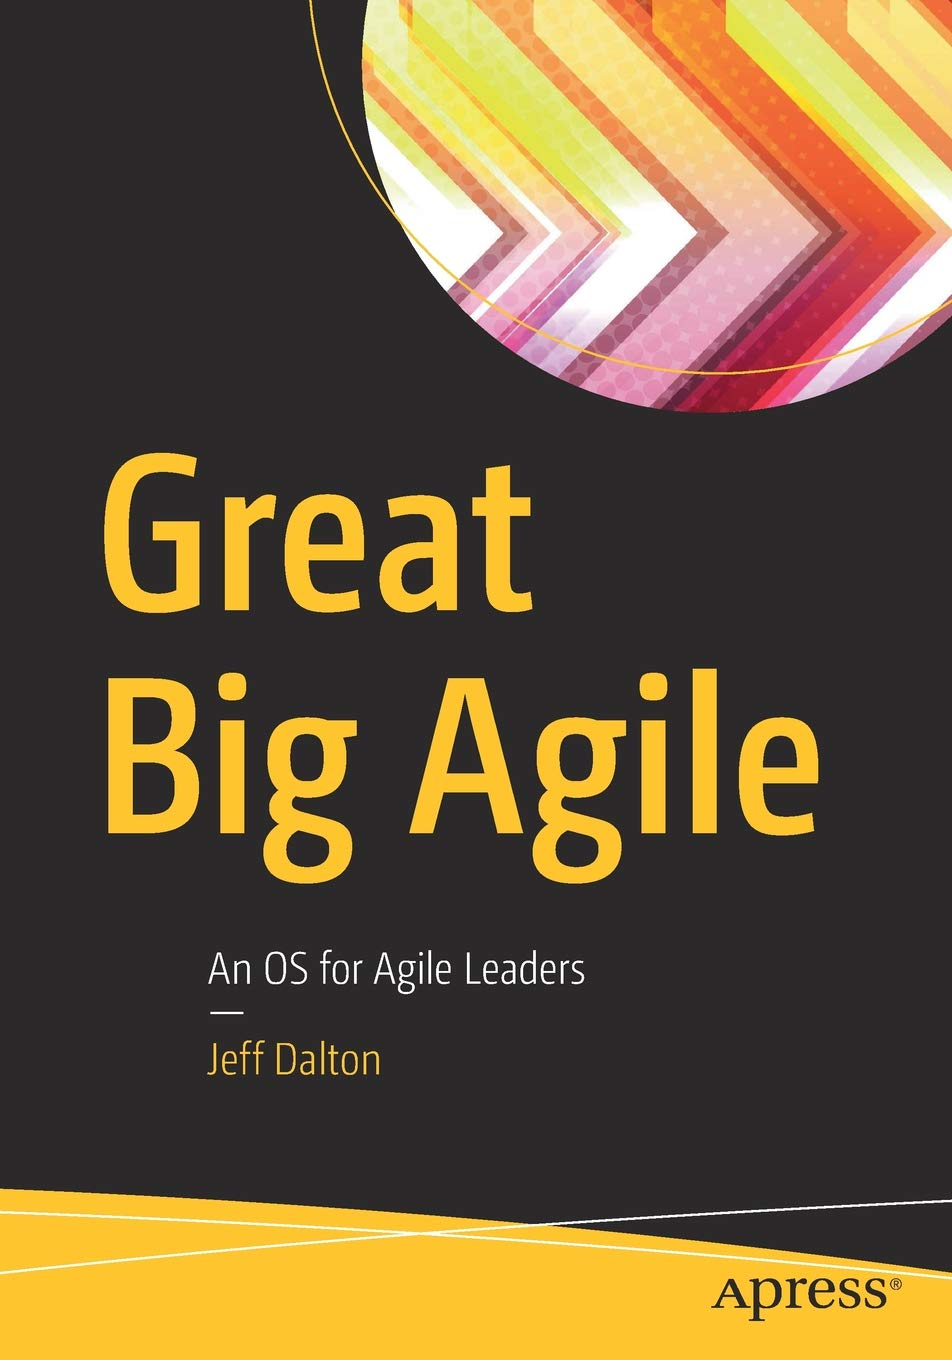 Great Big Agile: An OS for Agile Leaders Image